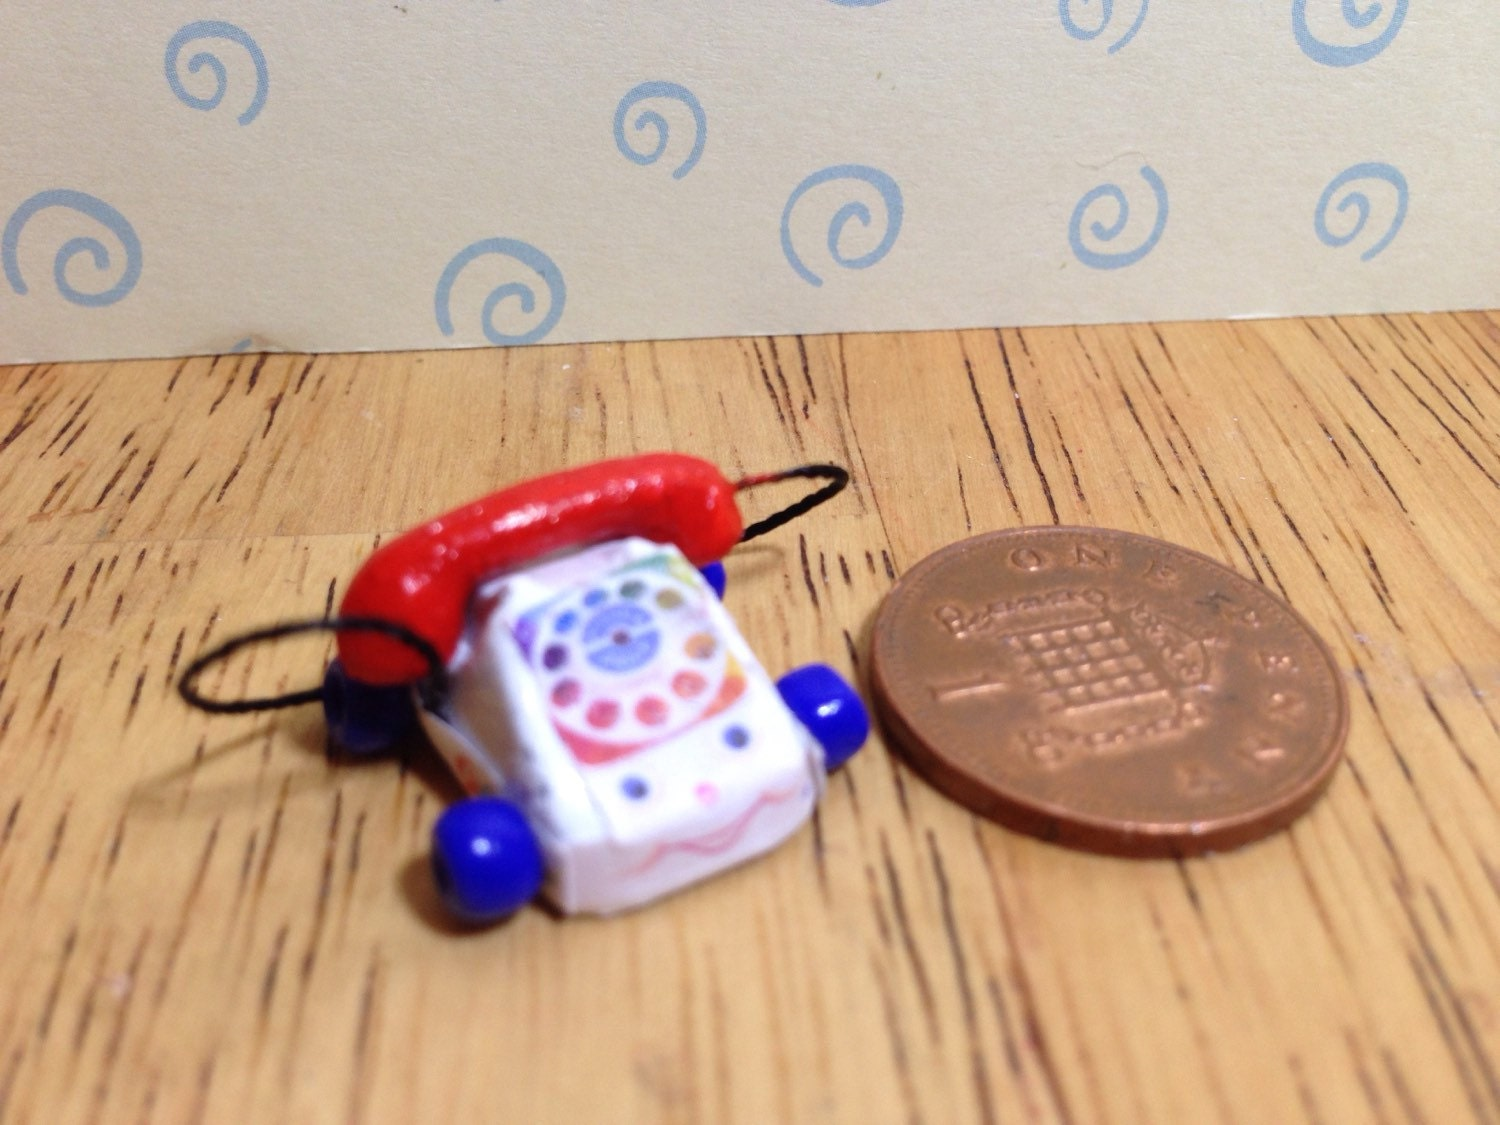 Hand made Dolls house Miniature replica vintage fisher price chatter phone 112 scale